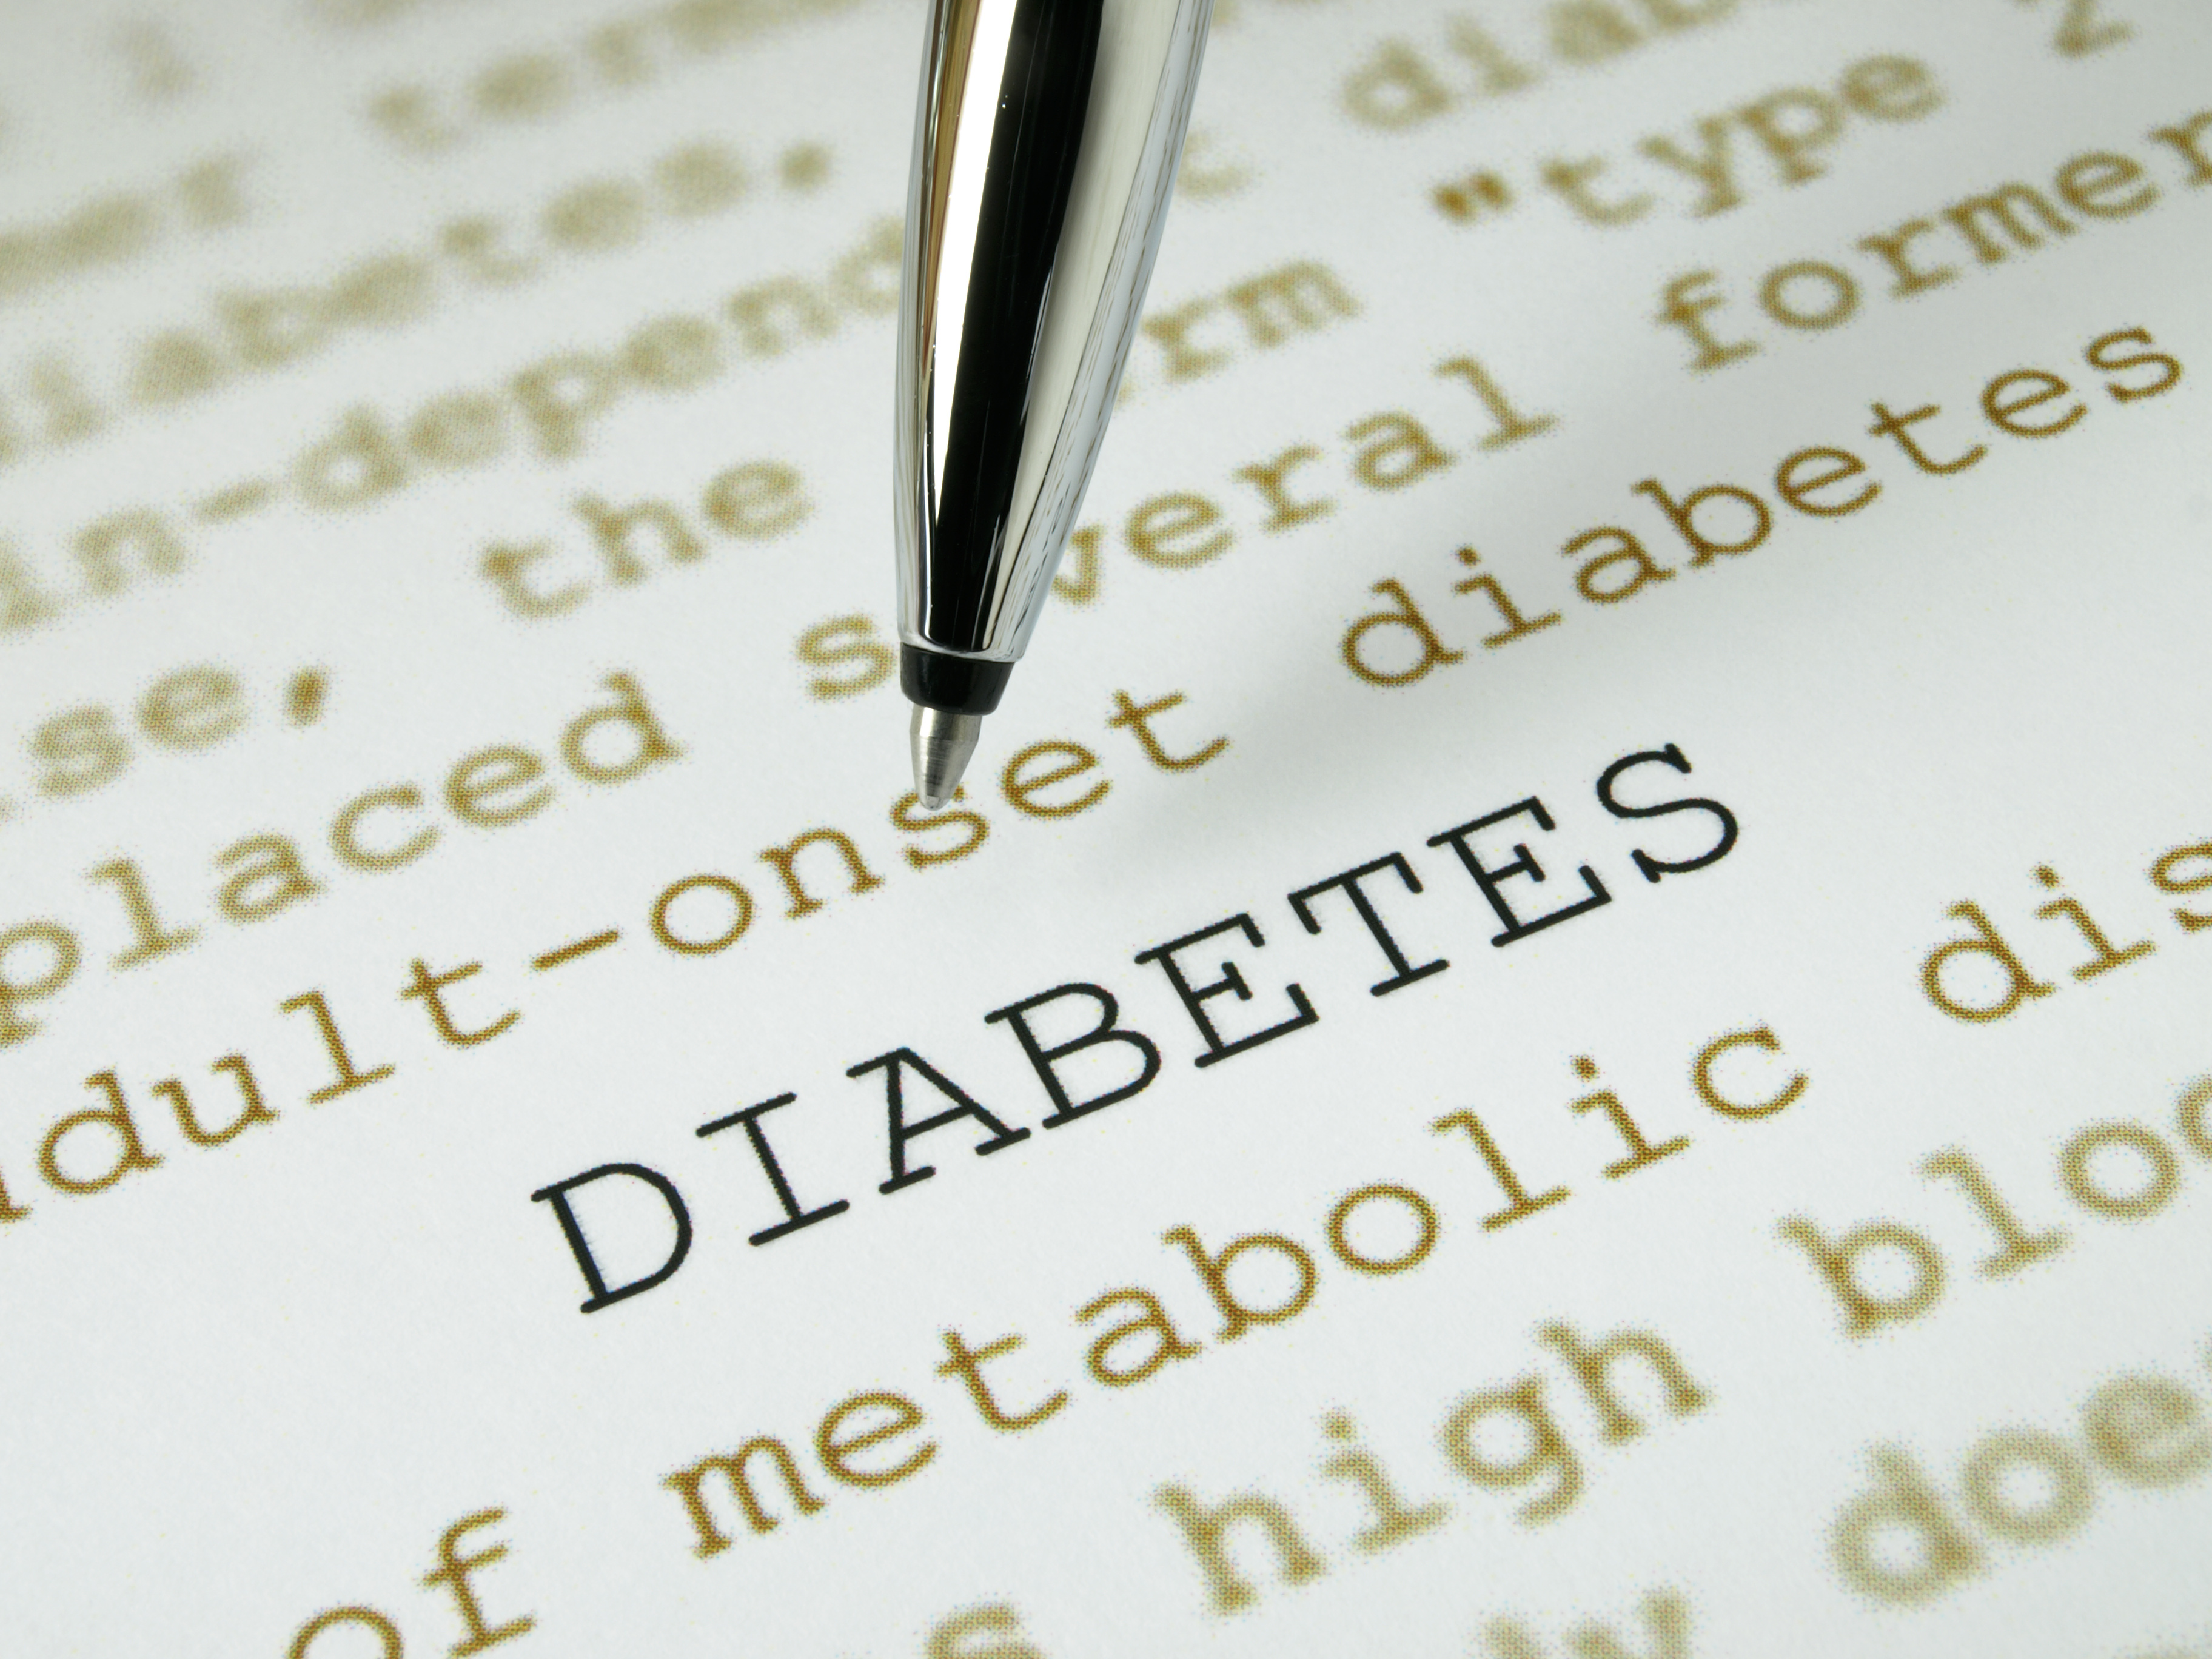 Pointing by diabetes